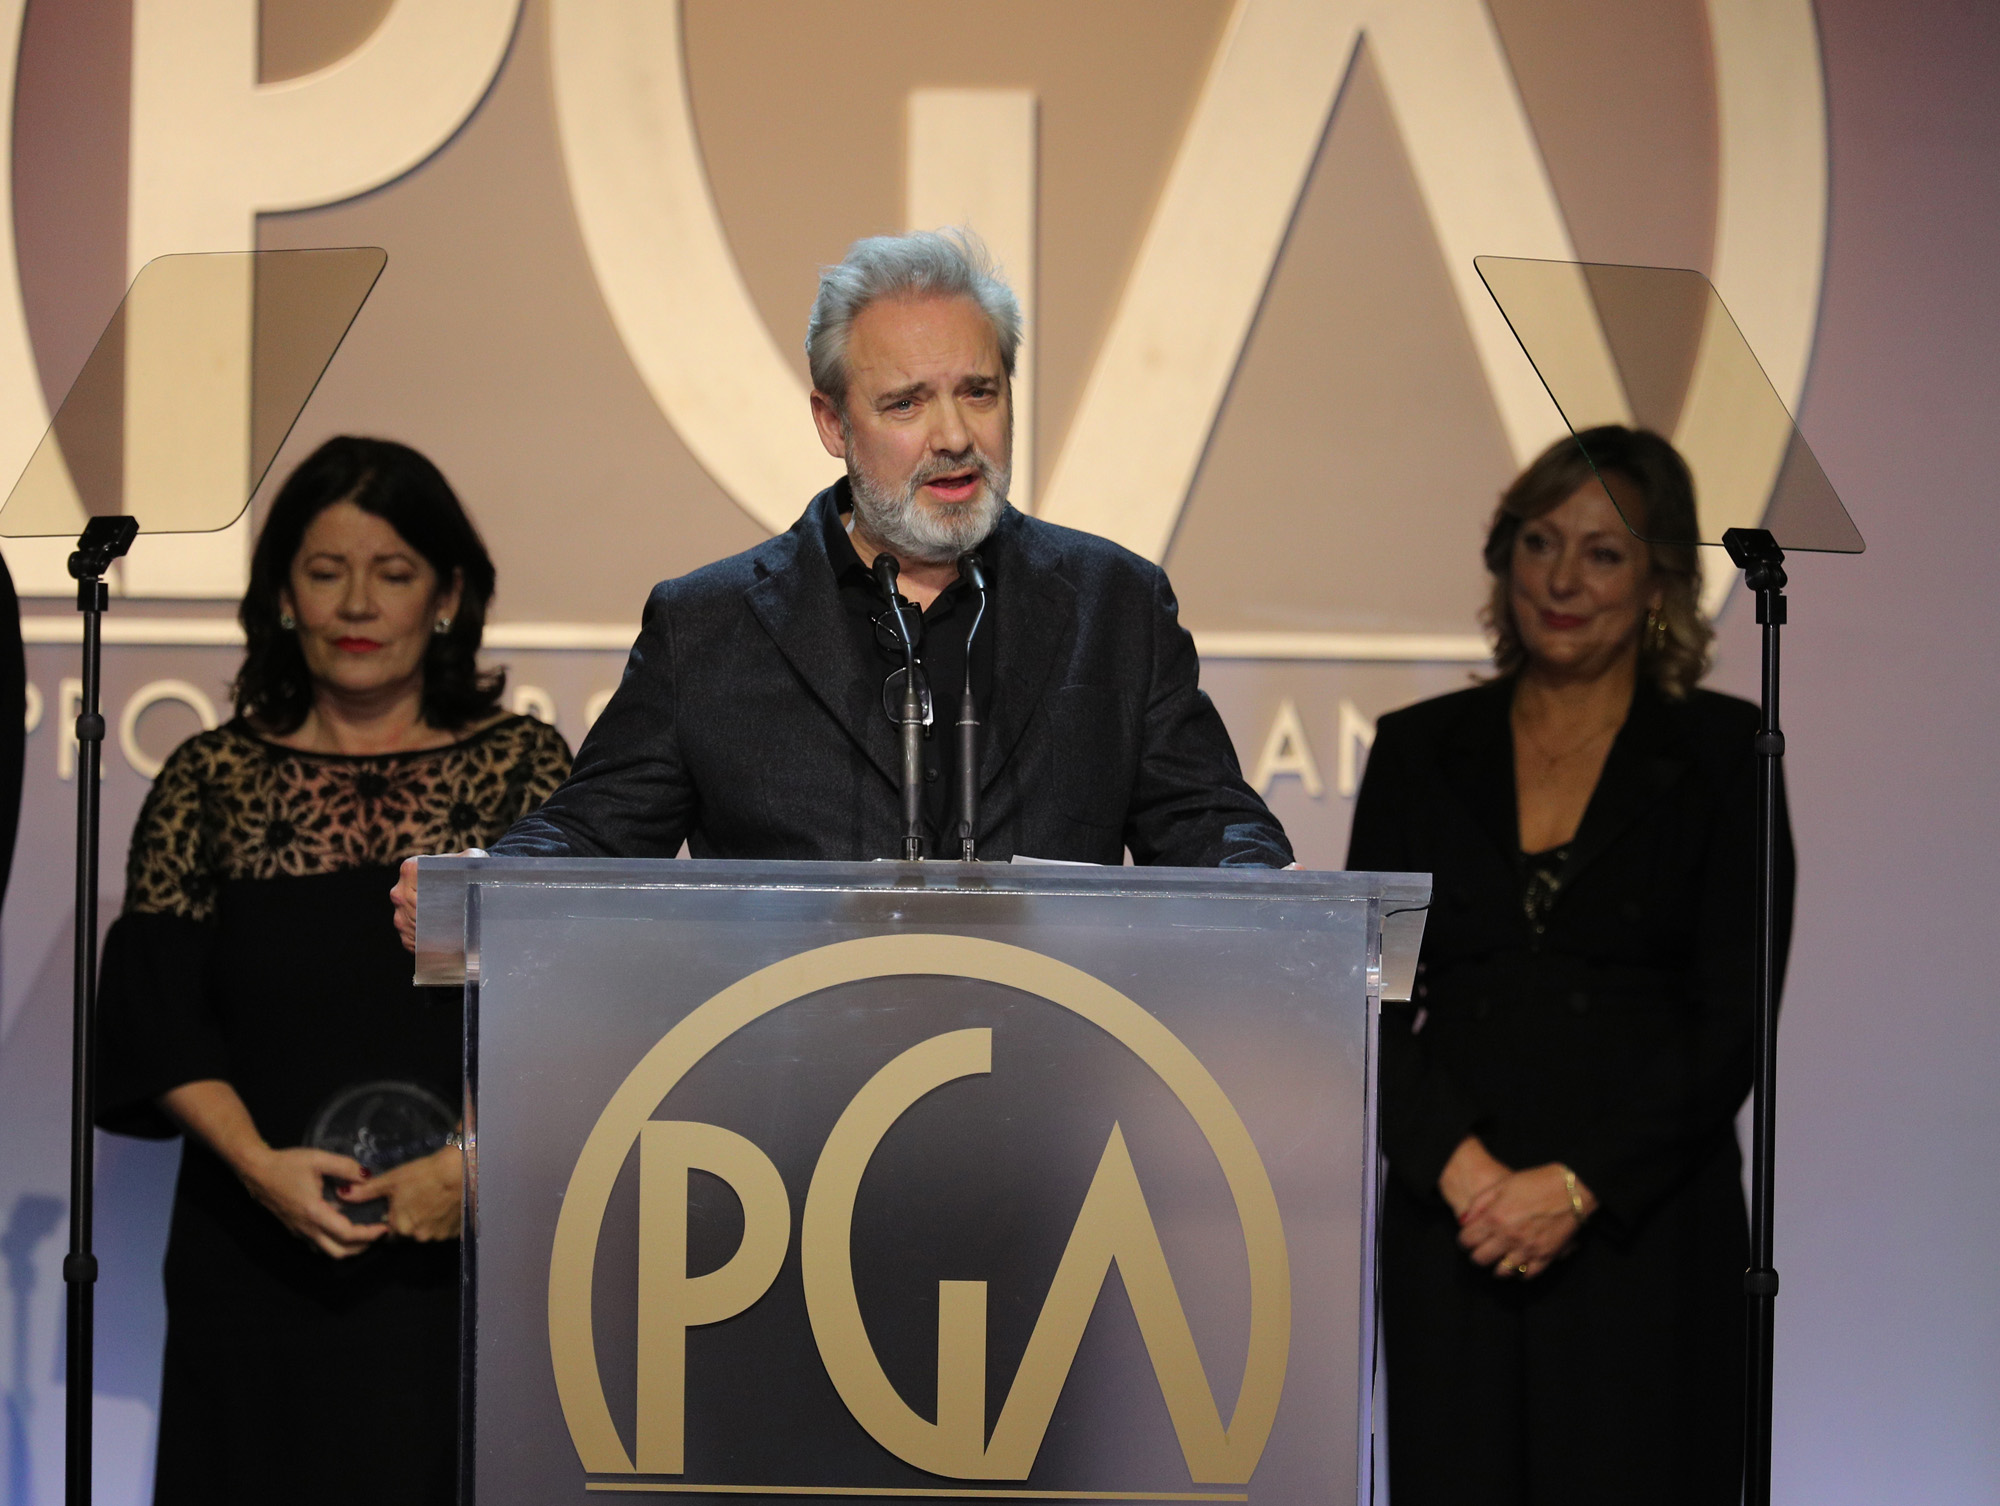 Sam Mendes accepts the Darryl F. Zanuck Award for outstanding producer of theatrical motion pictures at the 31st Annual Producers Guild Awards. Photo by John Salangsang/Invision